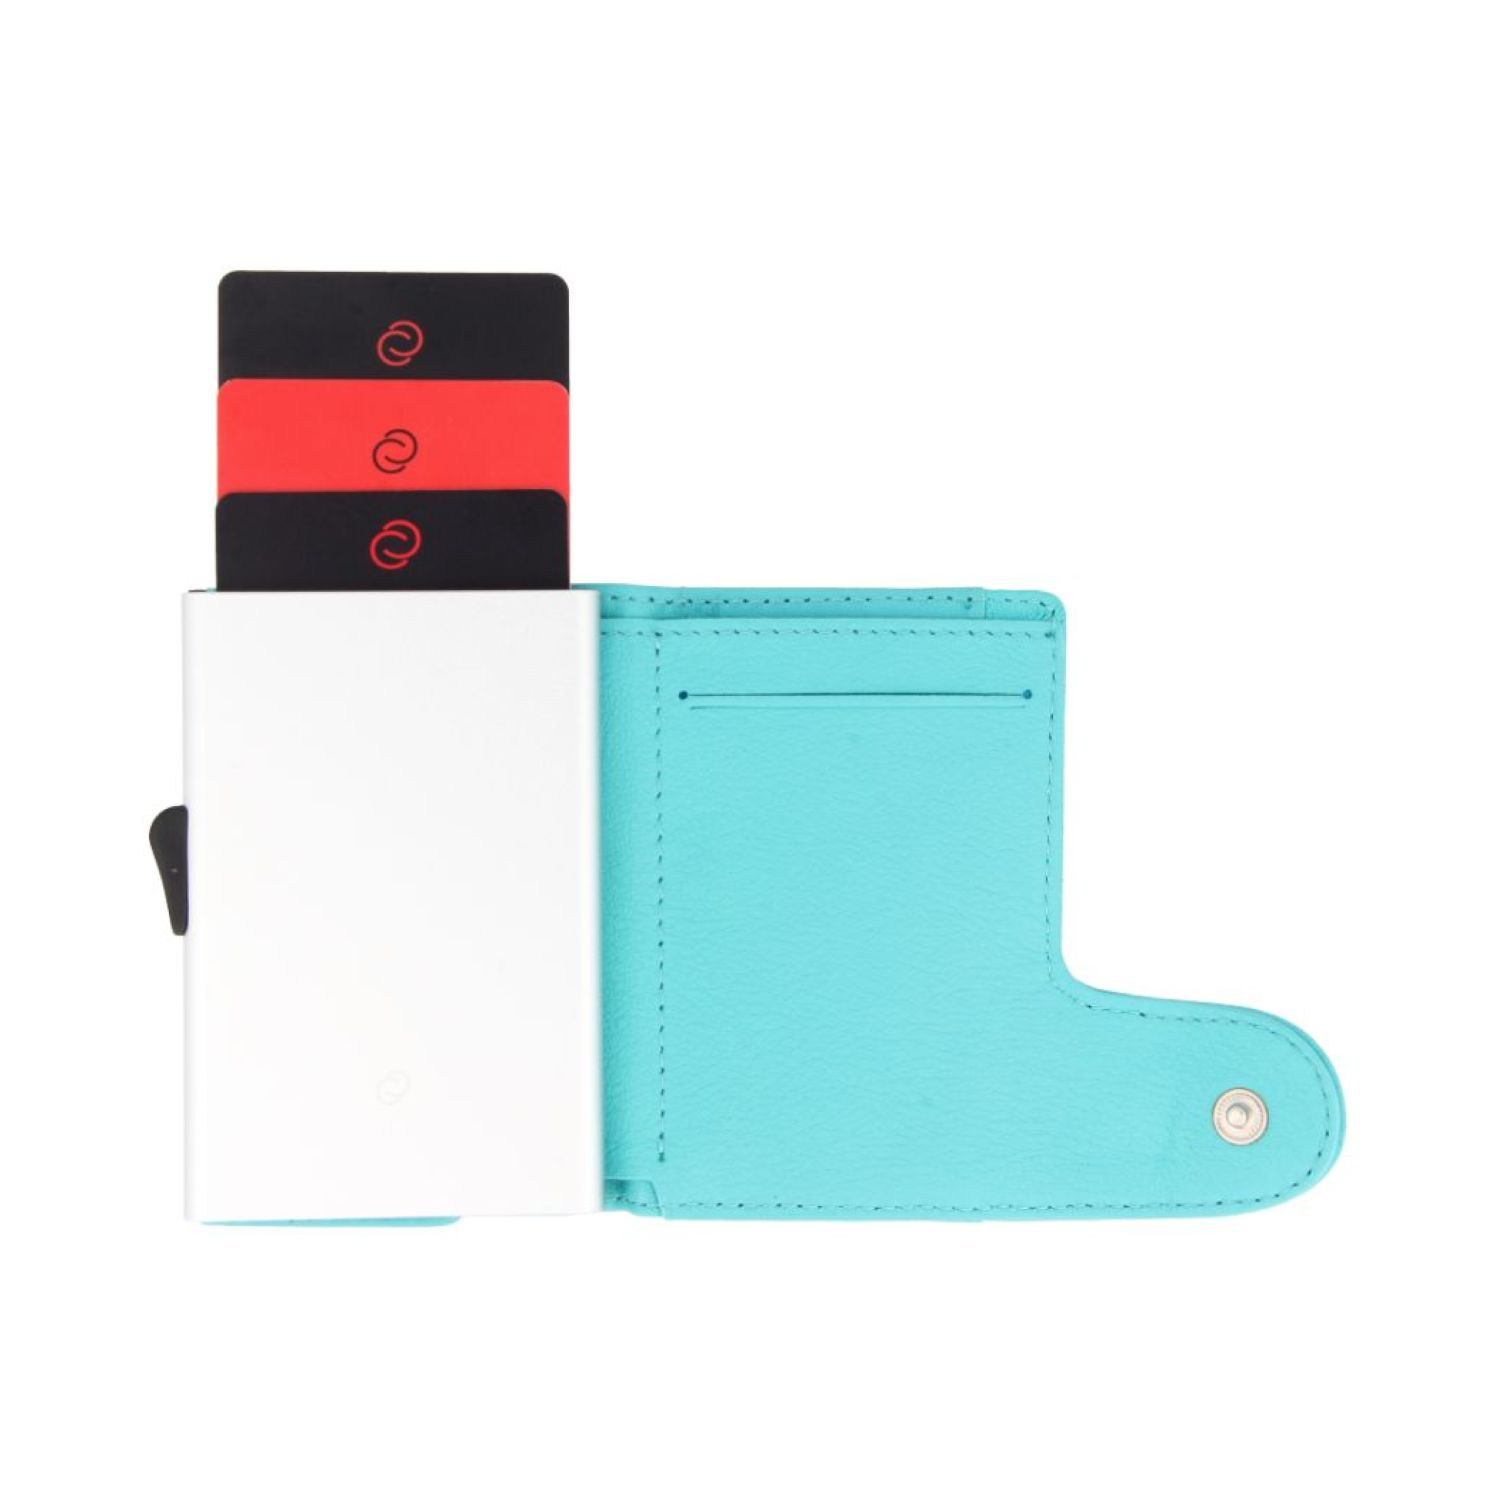 5ff03ac10d2 Buy C-Secure Italian Leather Wallet (Caraibi D80689) in Singapore ...